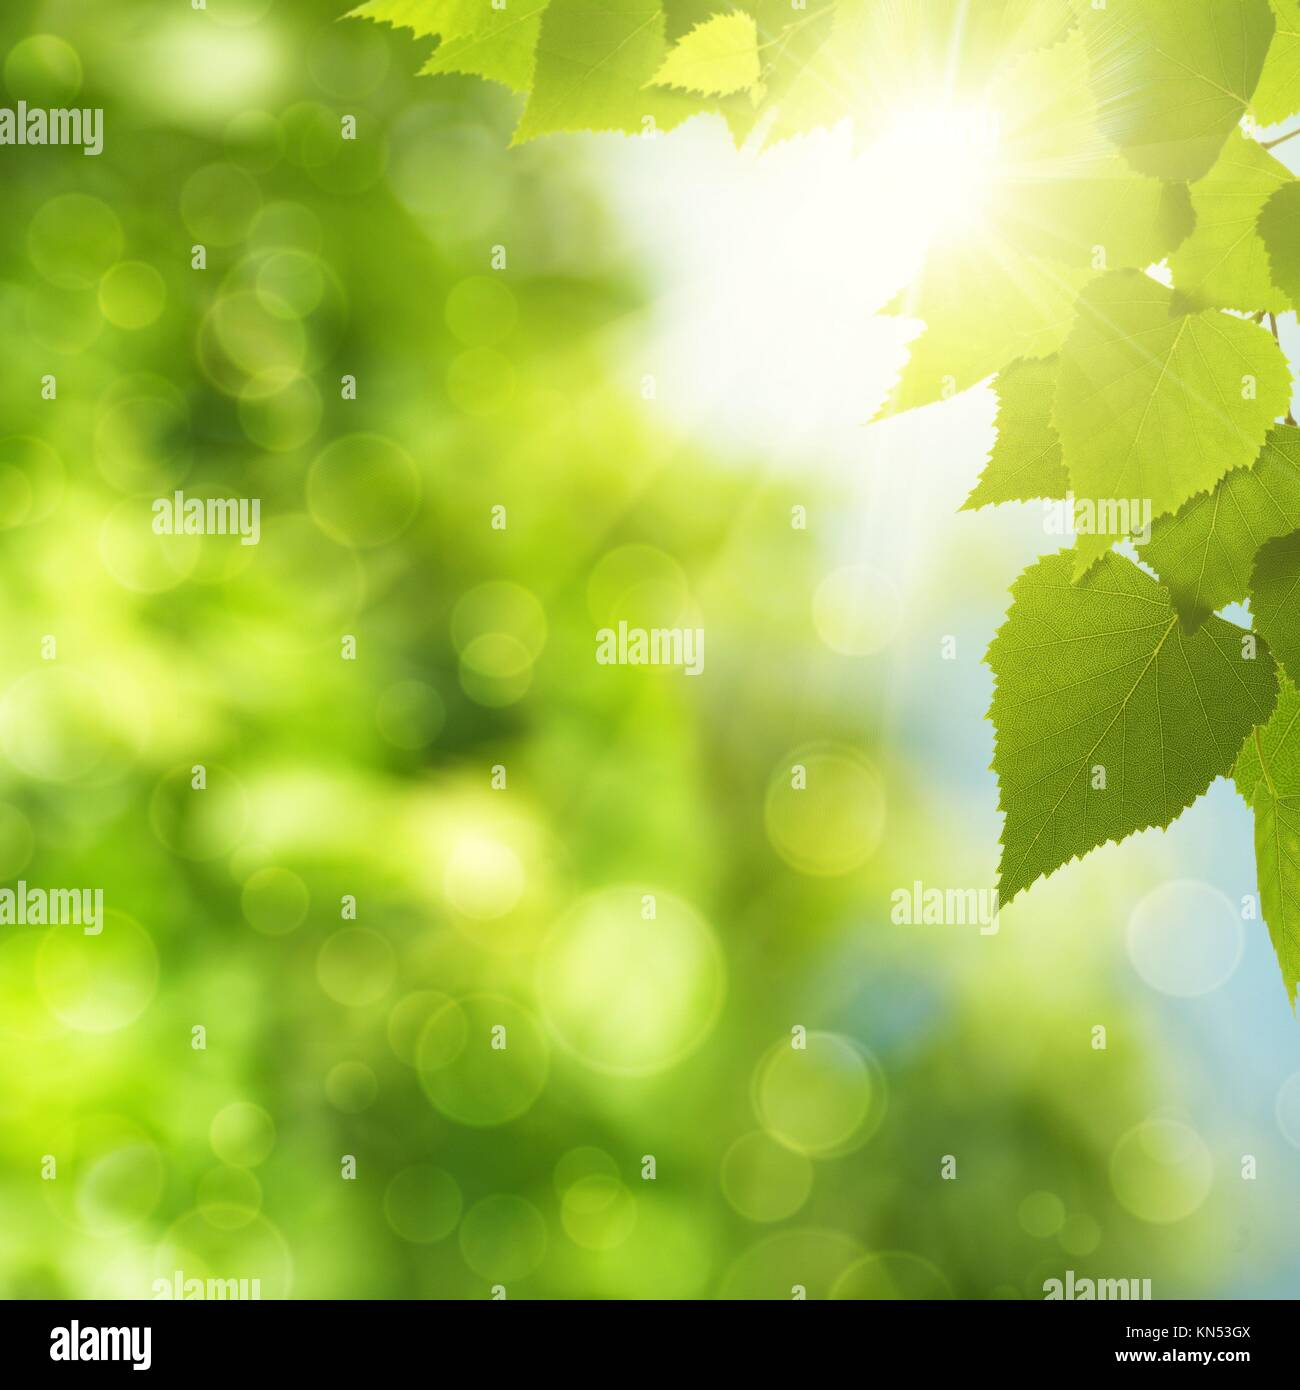 abstract natural backgrounds with green foliage and sun beam stock